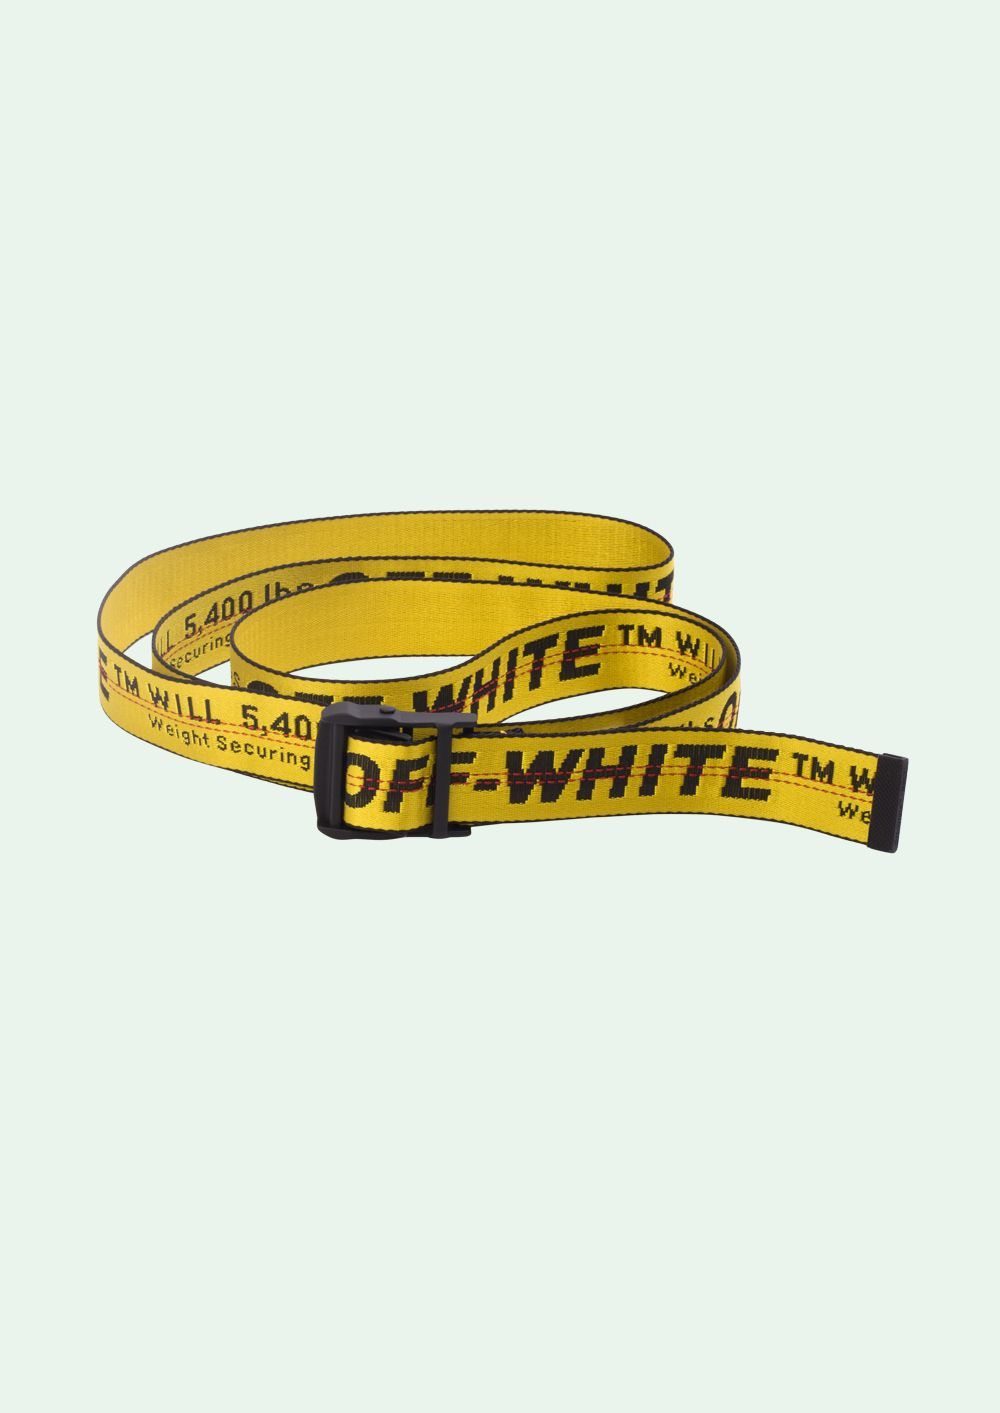 OFF WHITE Tie Down Industrial Belt Letter Embroidered Nylon Canvas Inspired Belt